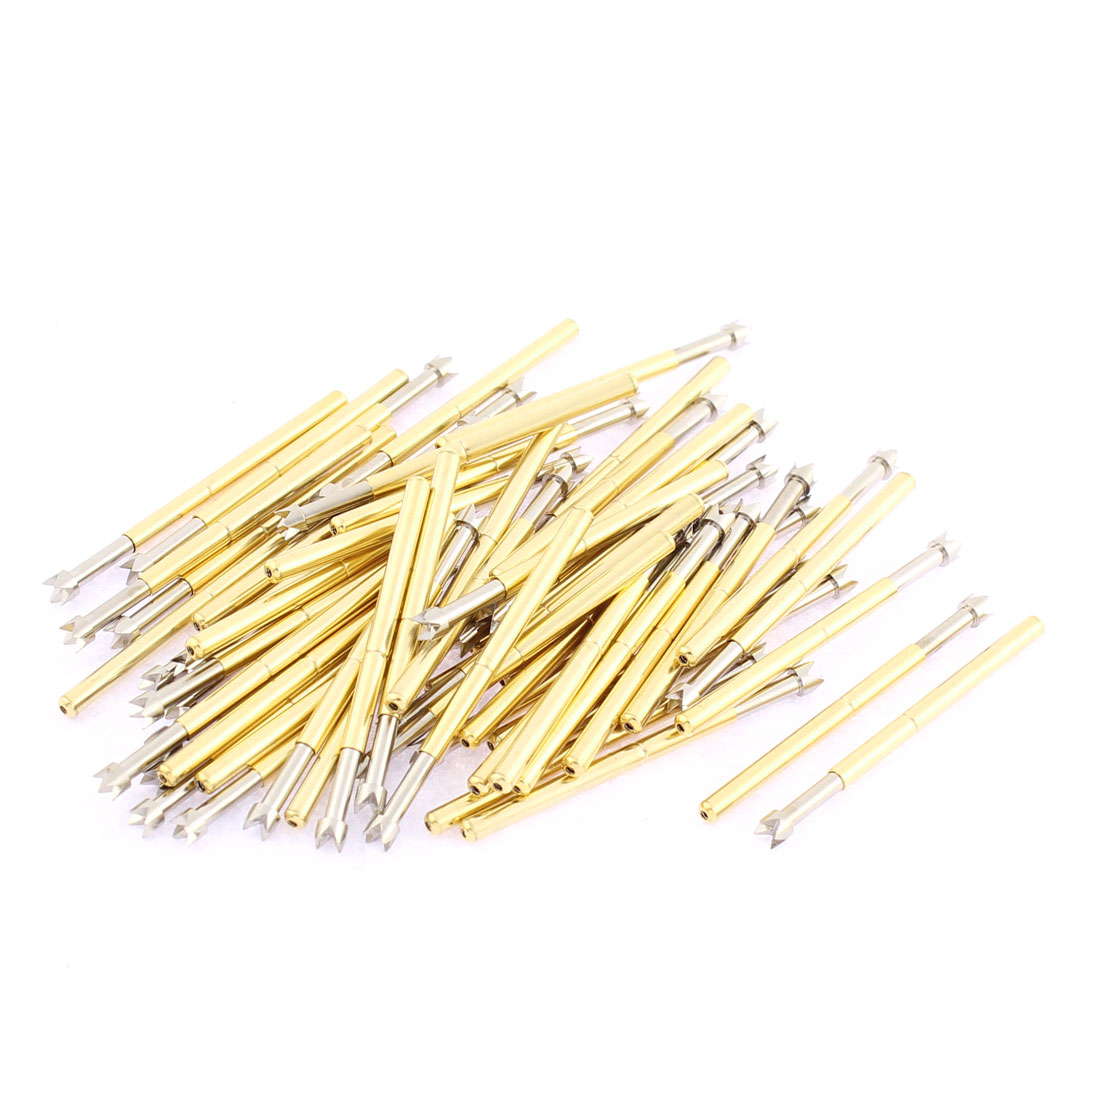 P125-Q2 33mm Length 4-Point Crown Tip Spring Loaded Contact Test Probe Pin 60Pcs